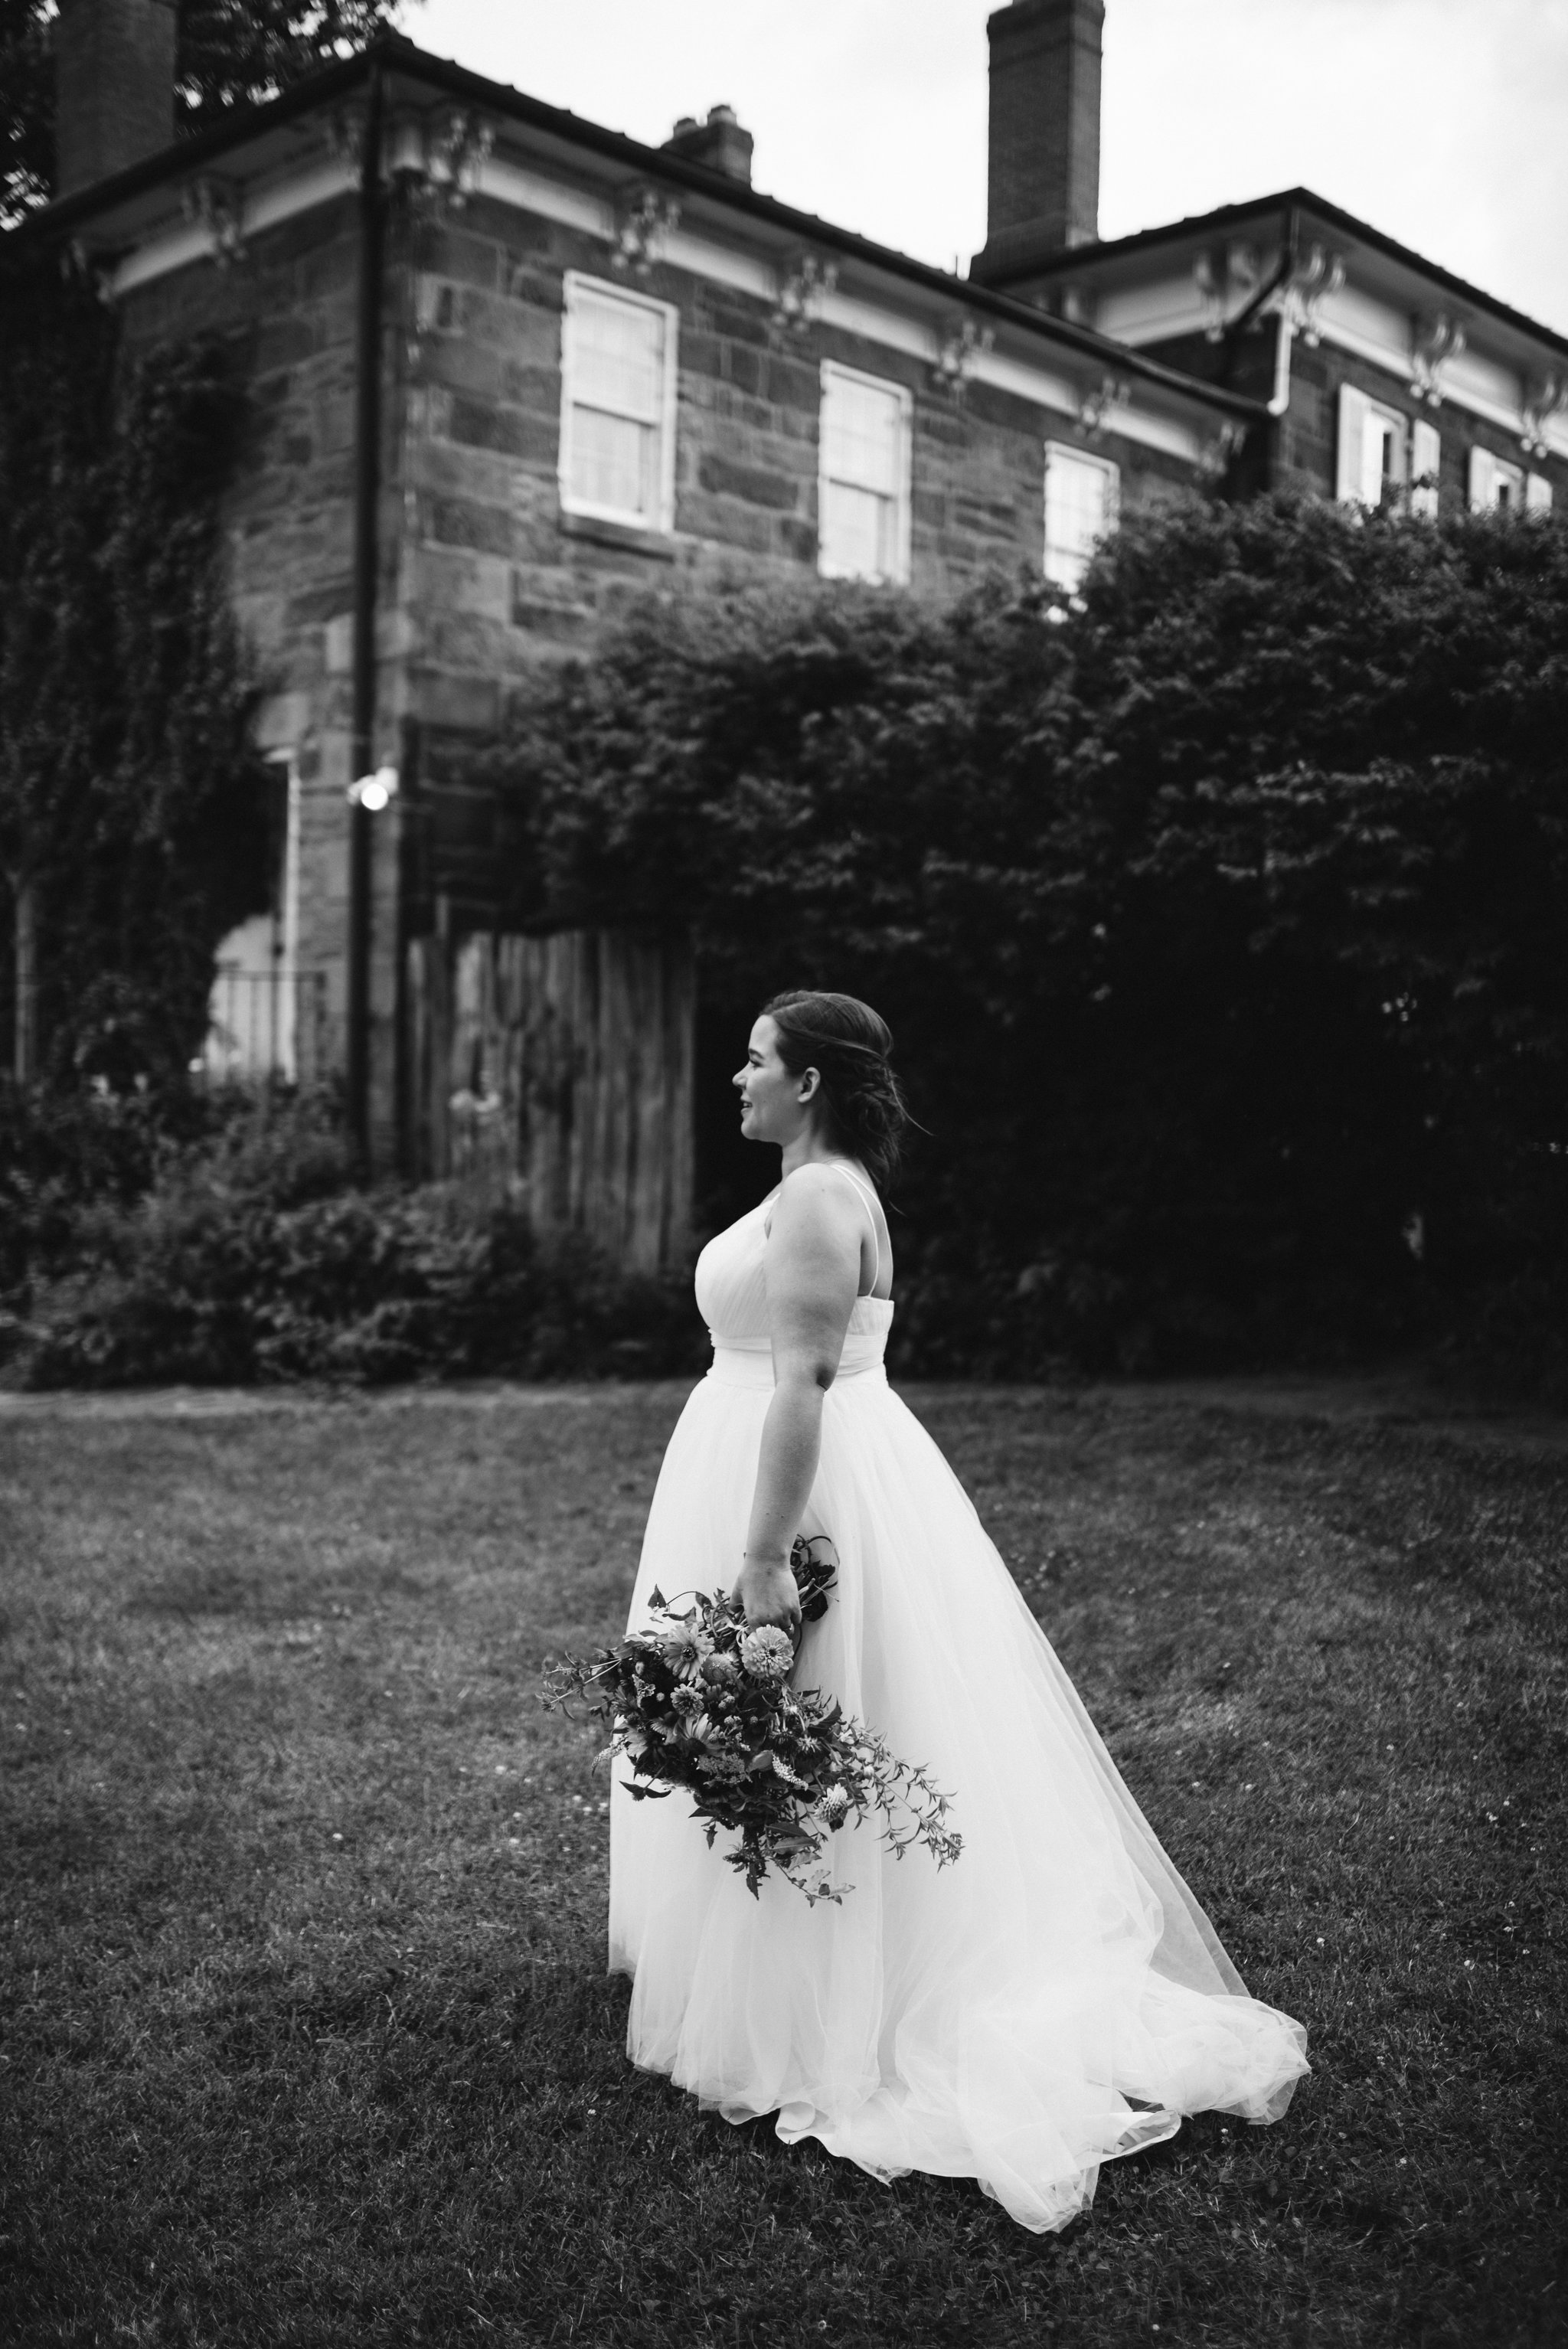 Rocklands Farm, Maryland, Intimate Wedding, Baltimore Wedding Photographer, Sungold Flower Co, Rustic, Romantic, Barn Wedding, Bride Walking Across Lawn Holding Flowers, Black and White Photo